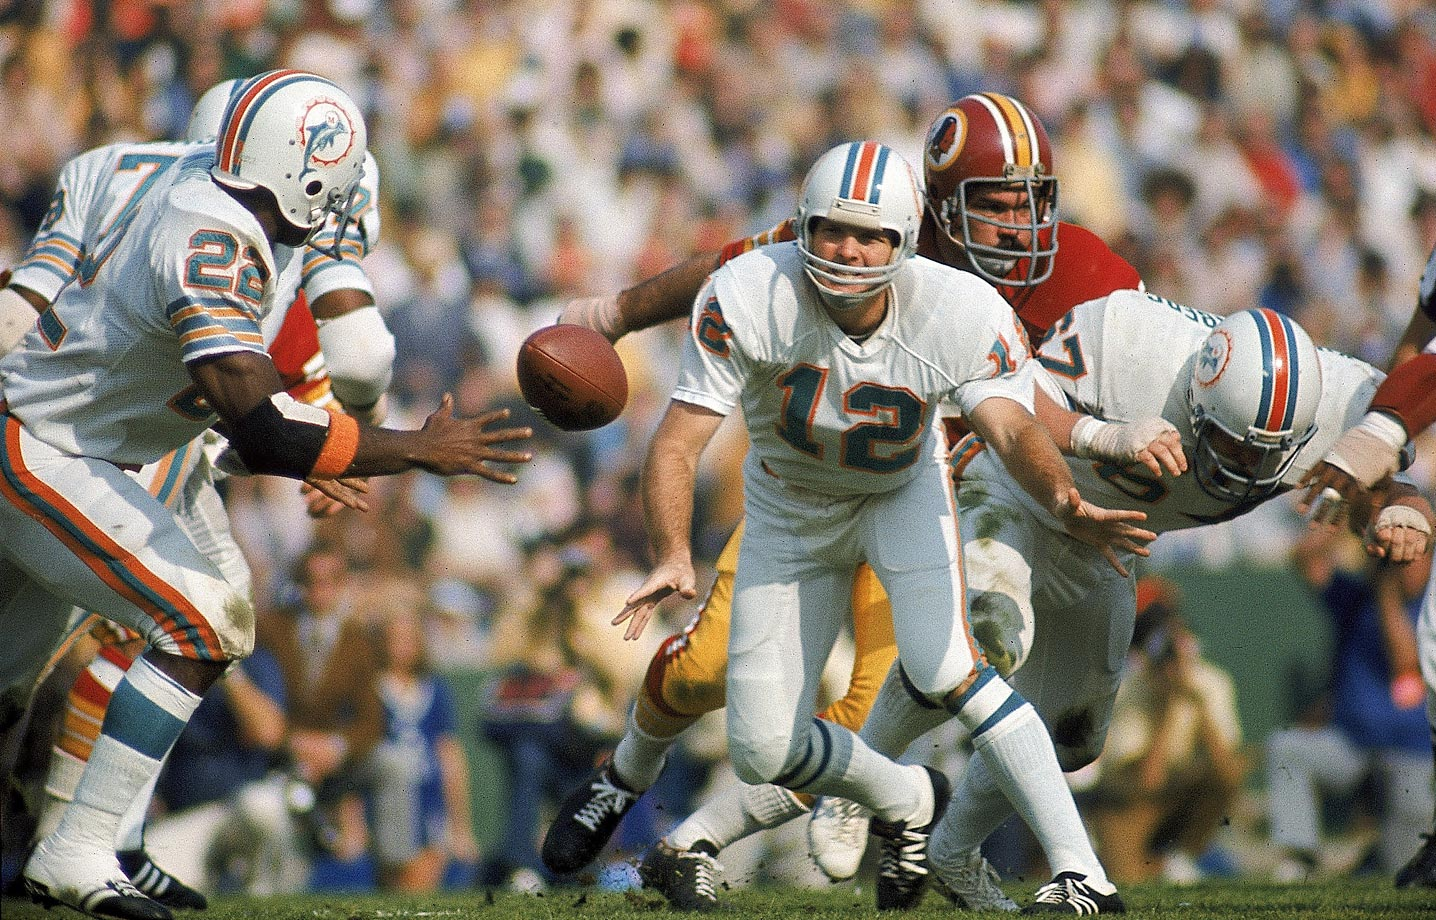 Miami Dolphins quarterback Bob Griese pitches the ball during Super Bowl VII against the Washington Redskins in January 1973.